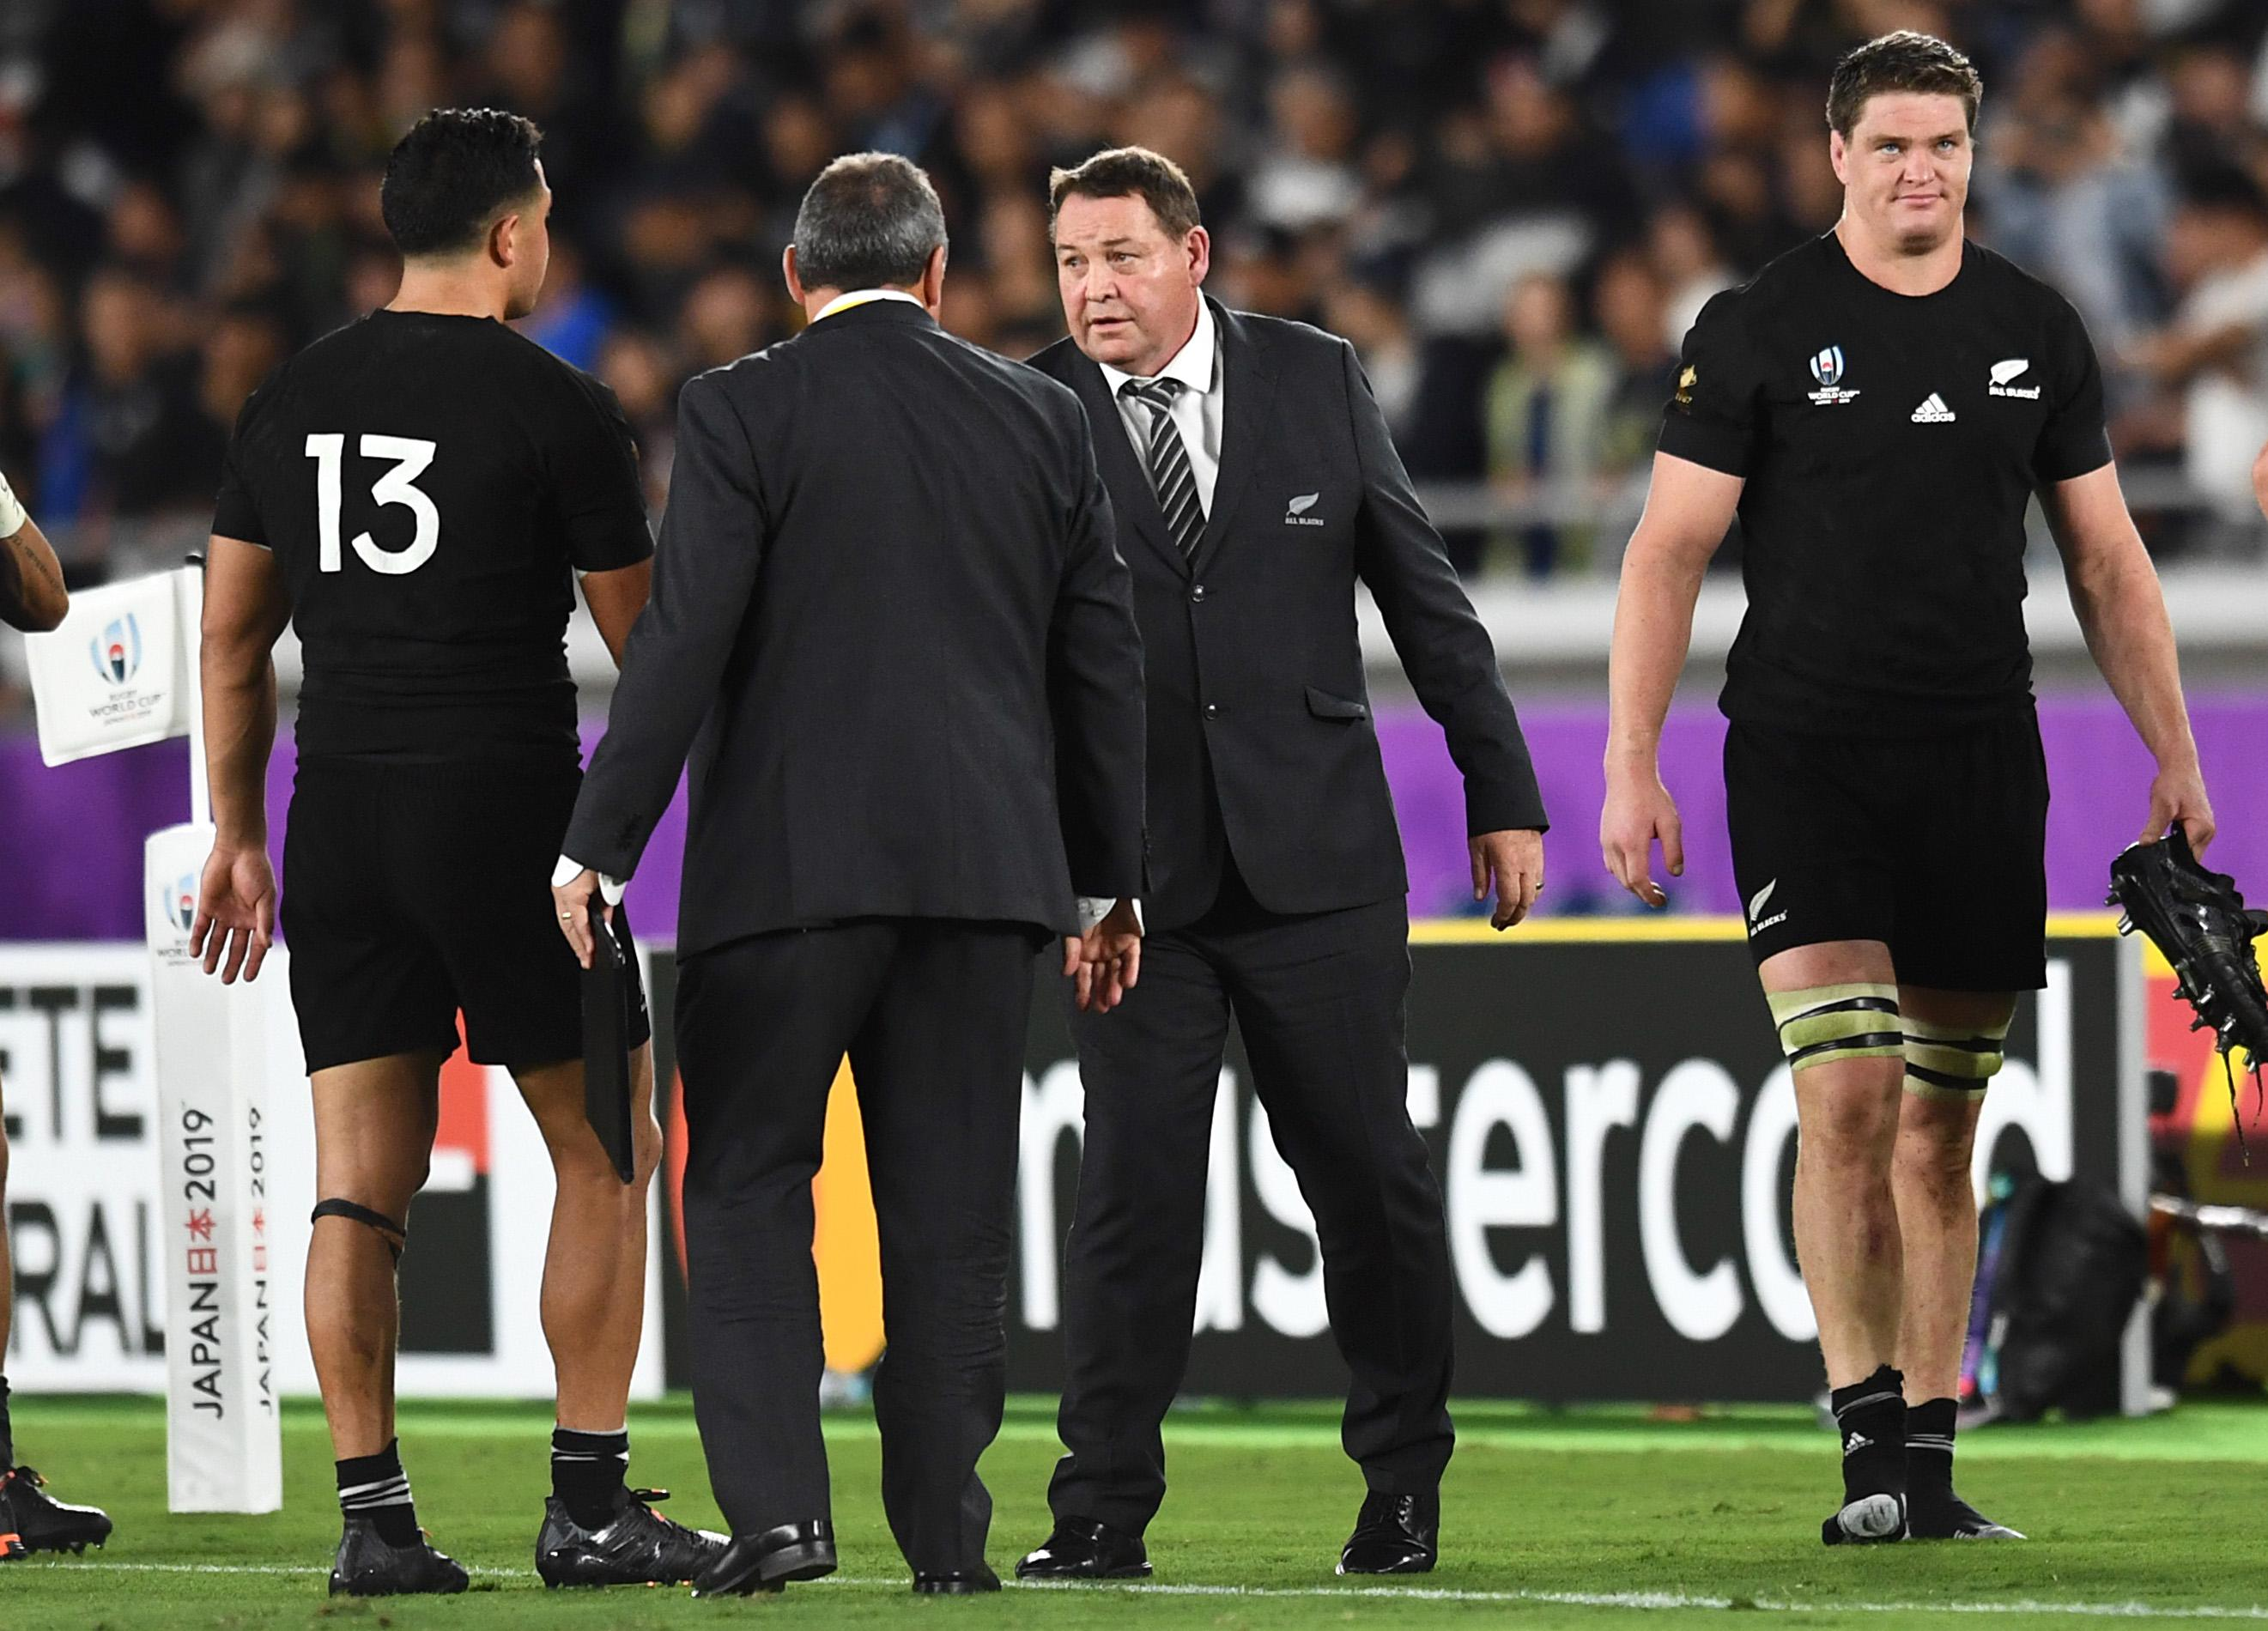 Not perfect but New Zealand pleased with discipline